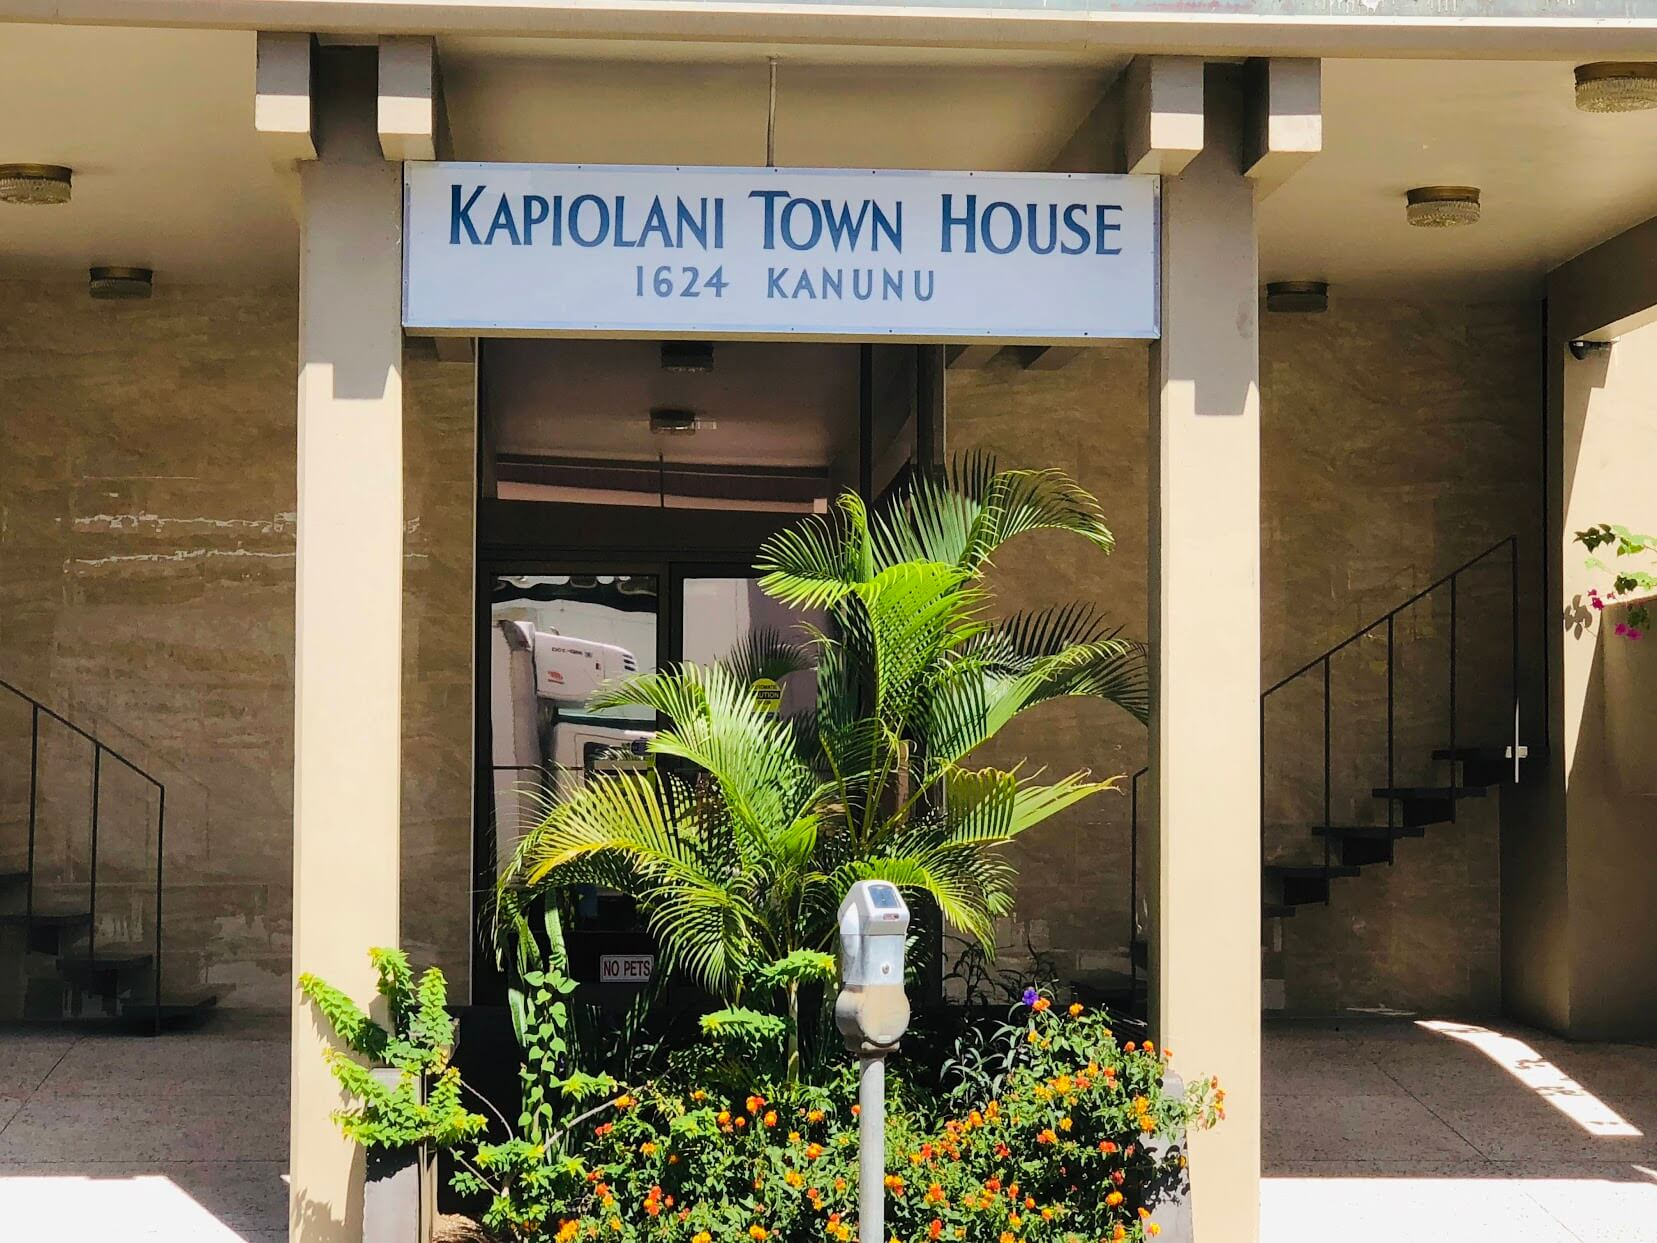 Kapiolani Townhouseの看板